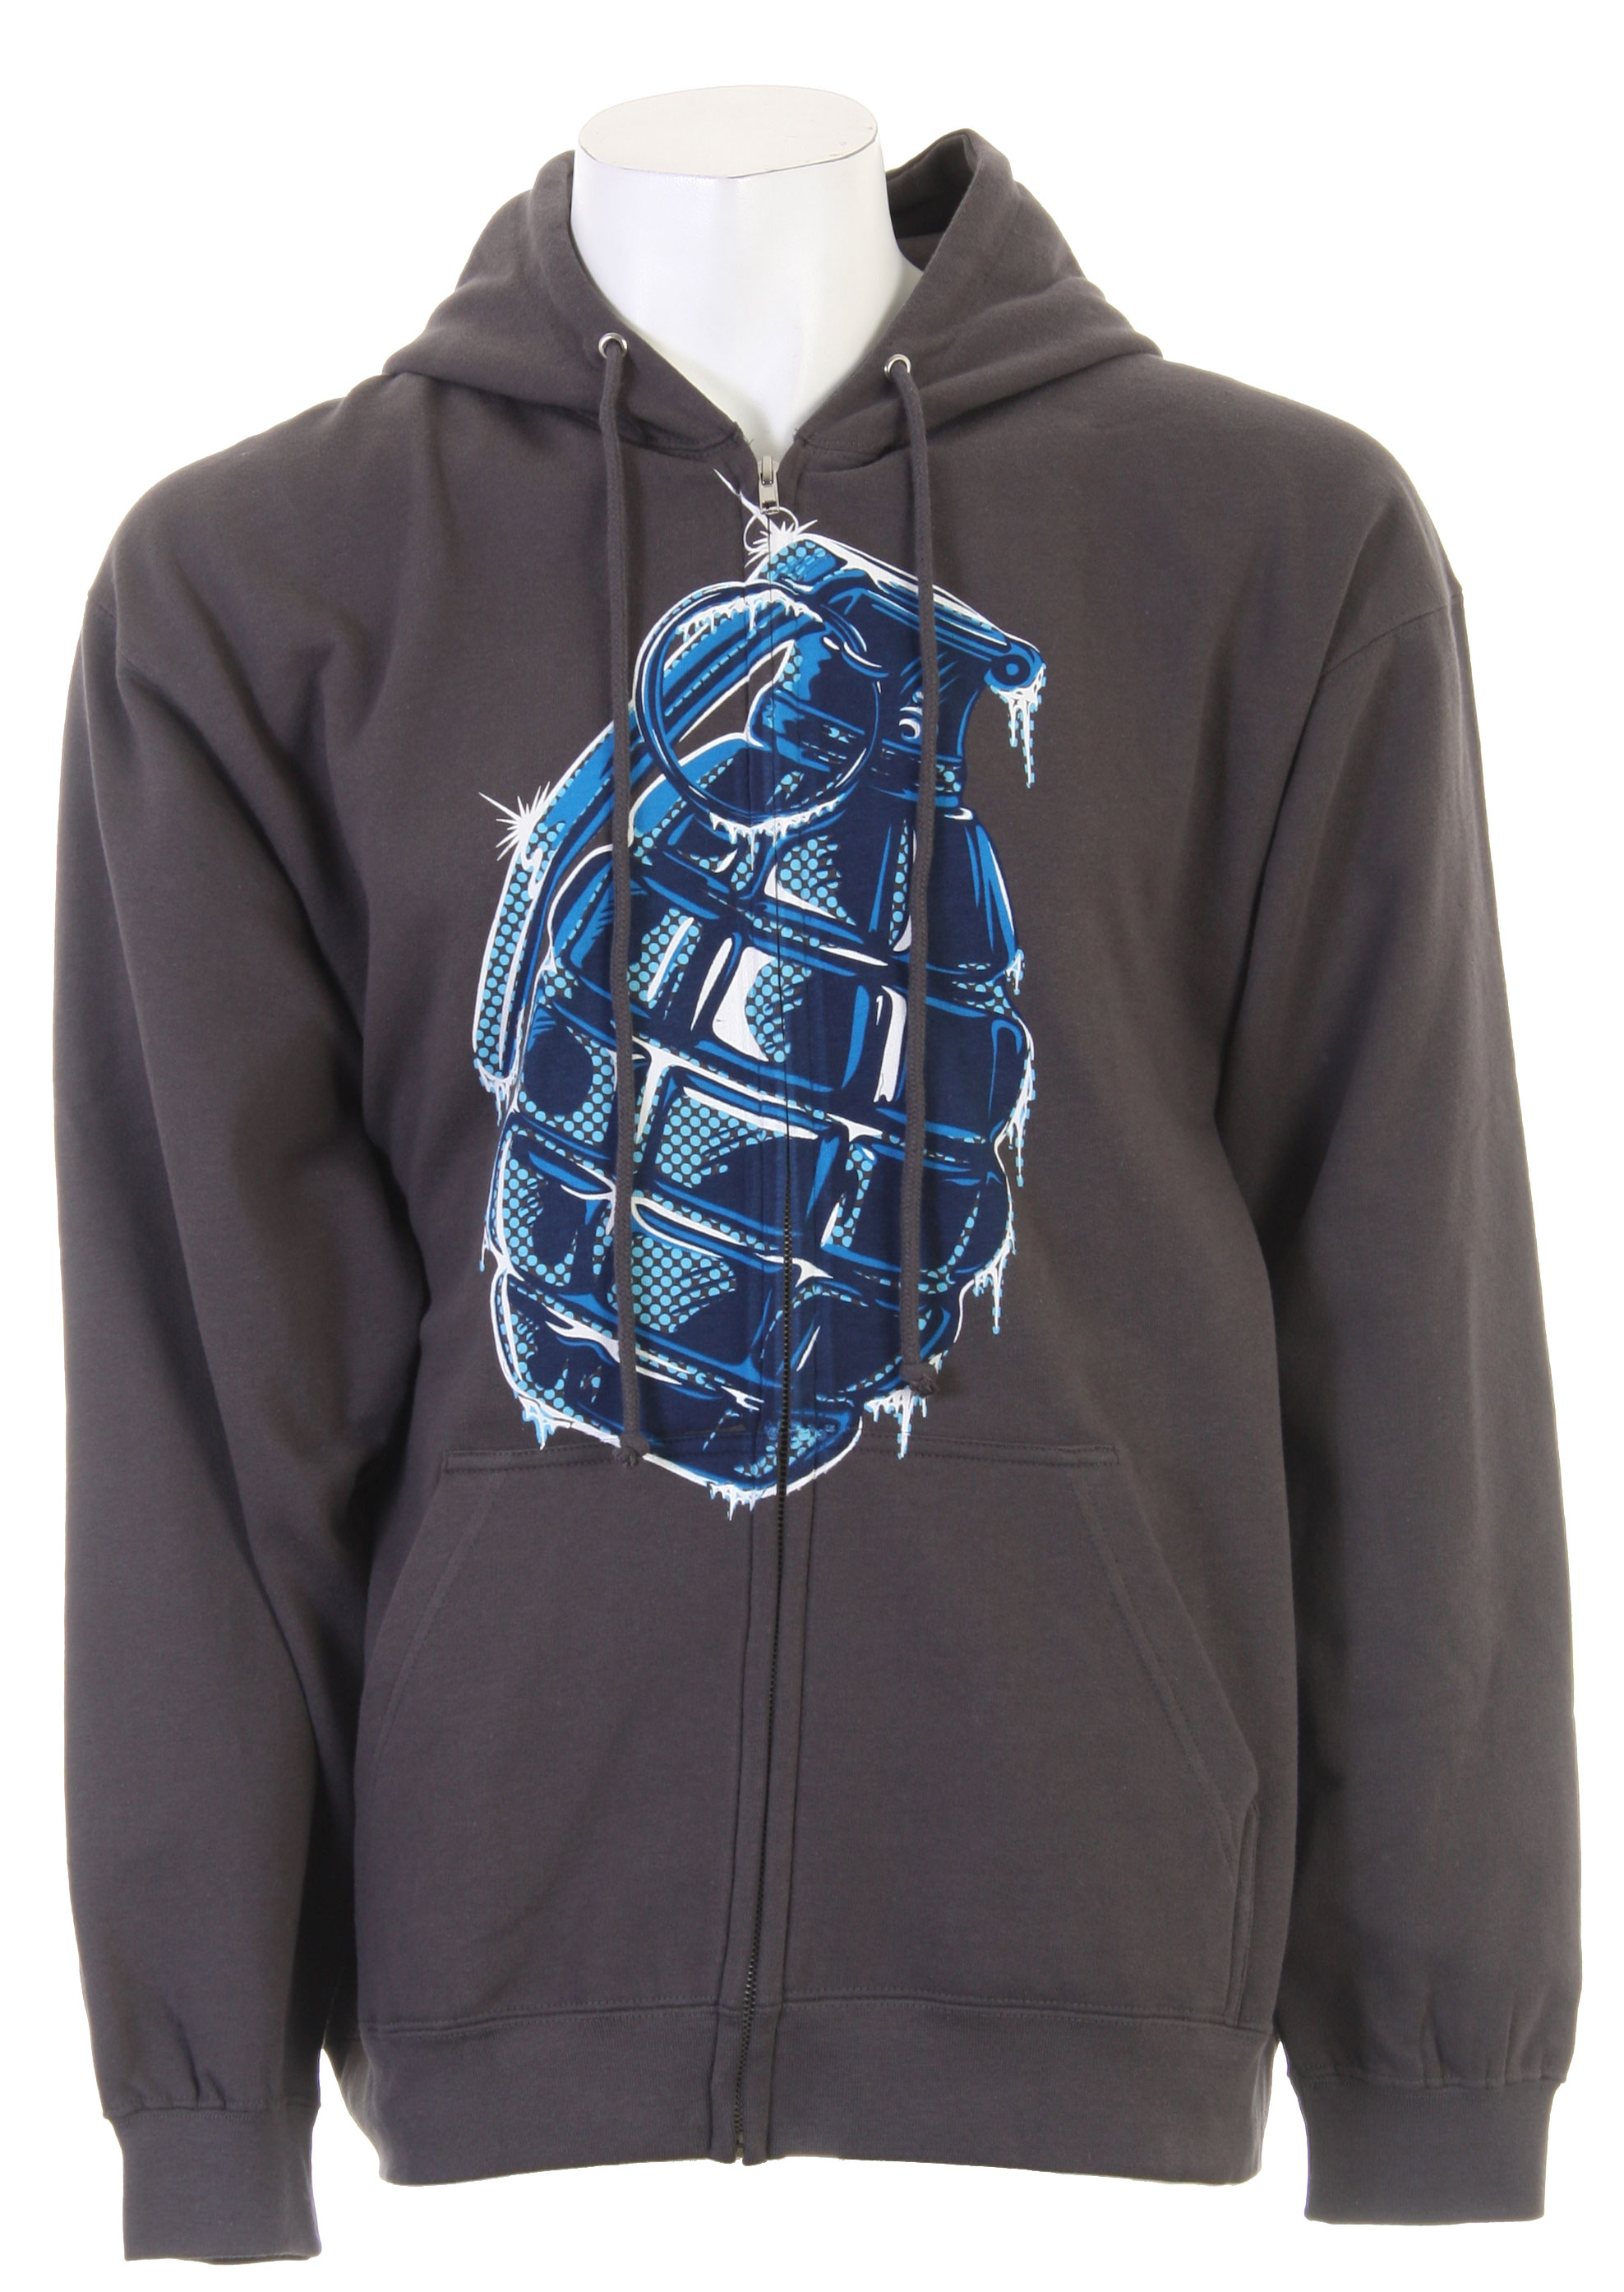 100% CottonKey Features of the Grenade Iced Zip Hoodie Gray:Full zip hoodie Screen print at front Kangaroo hand pocket Ribbed cuffs and hem - $23.95